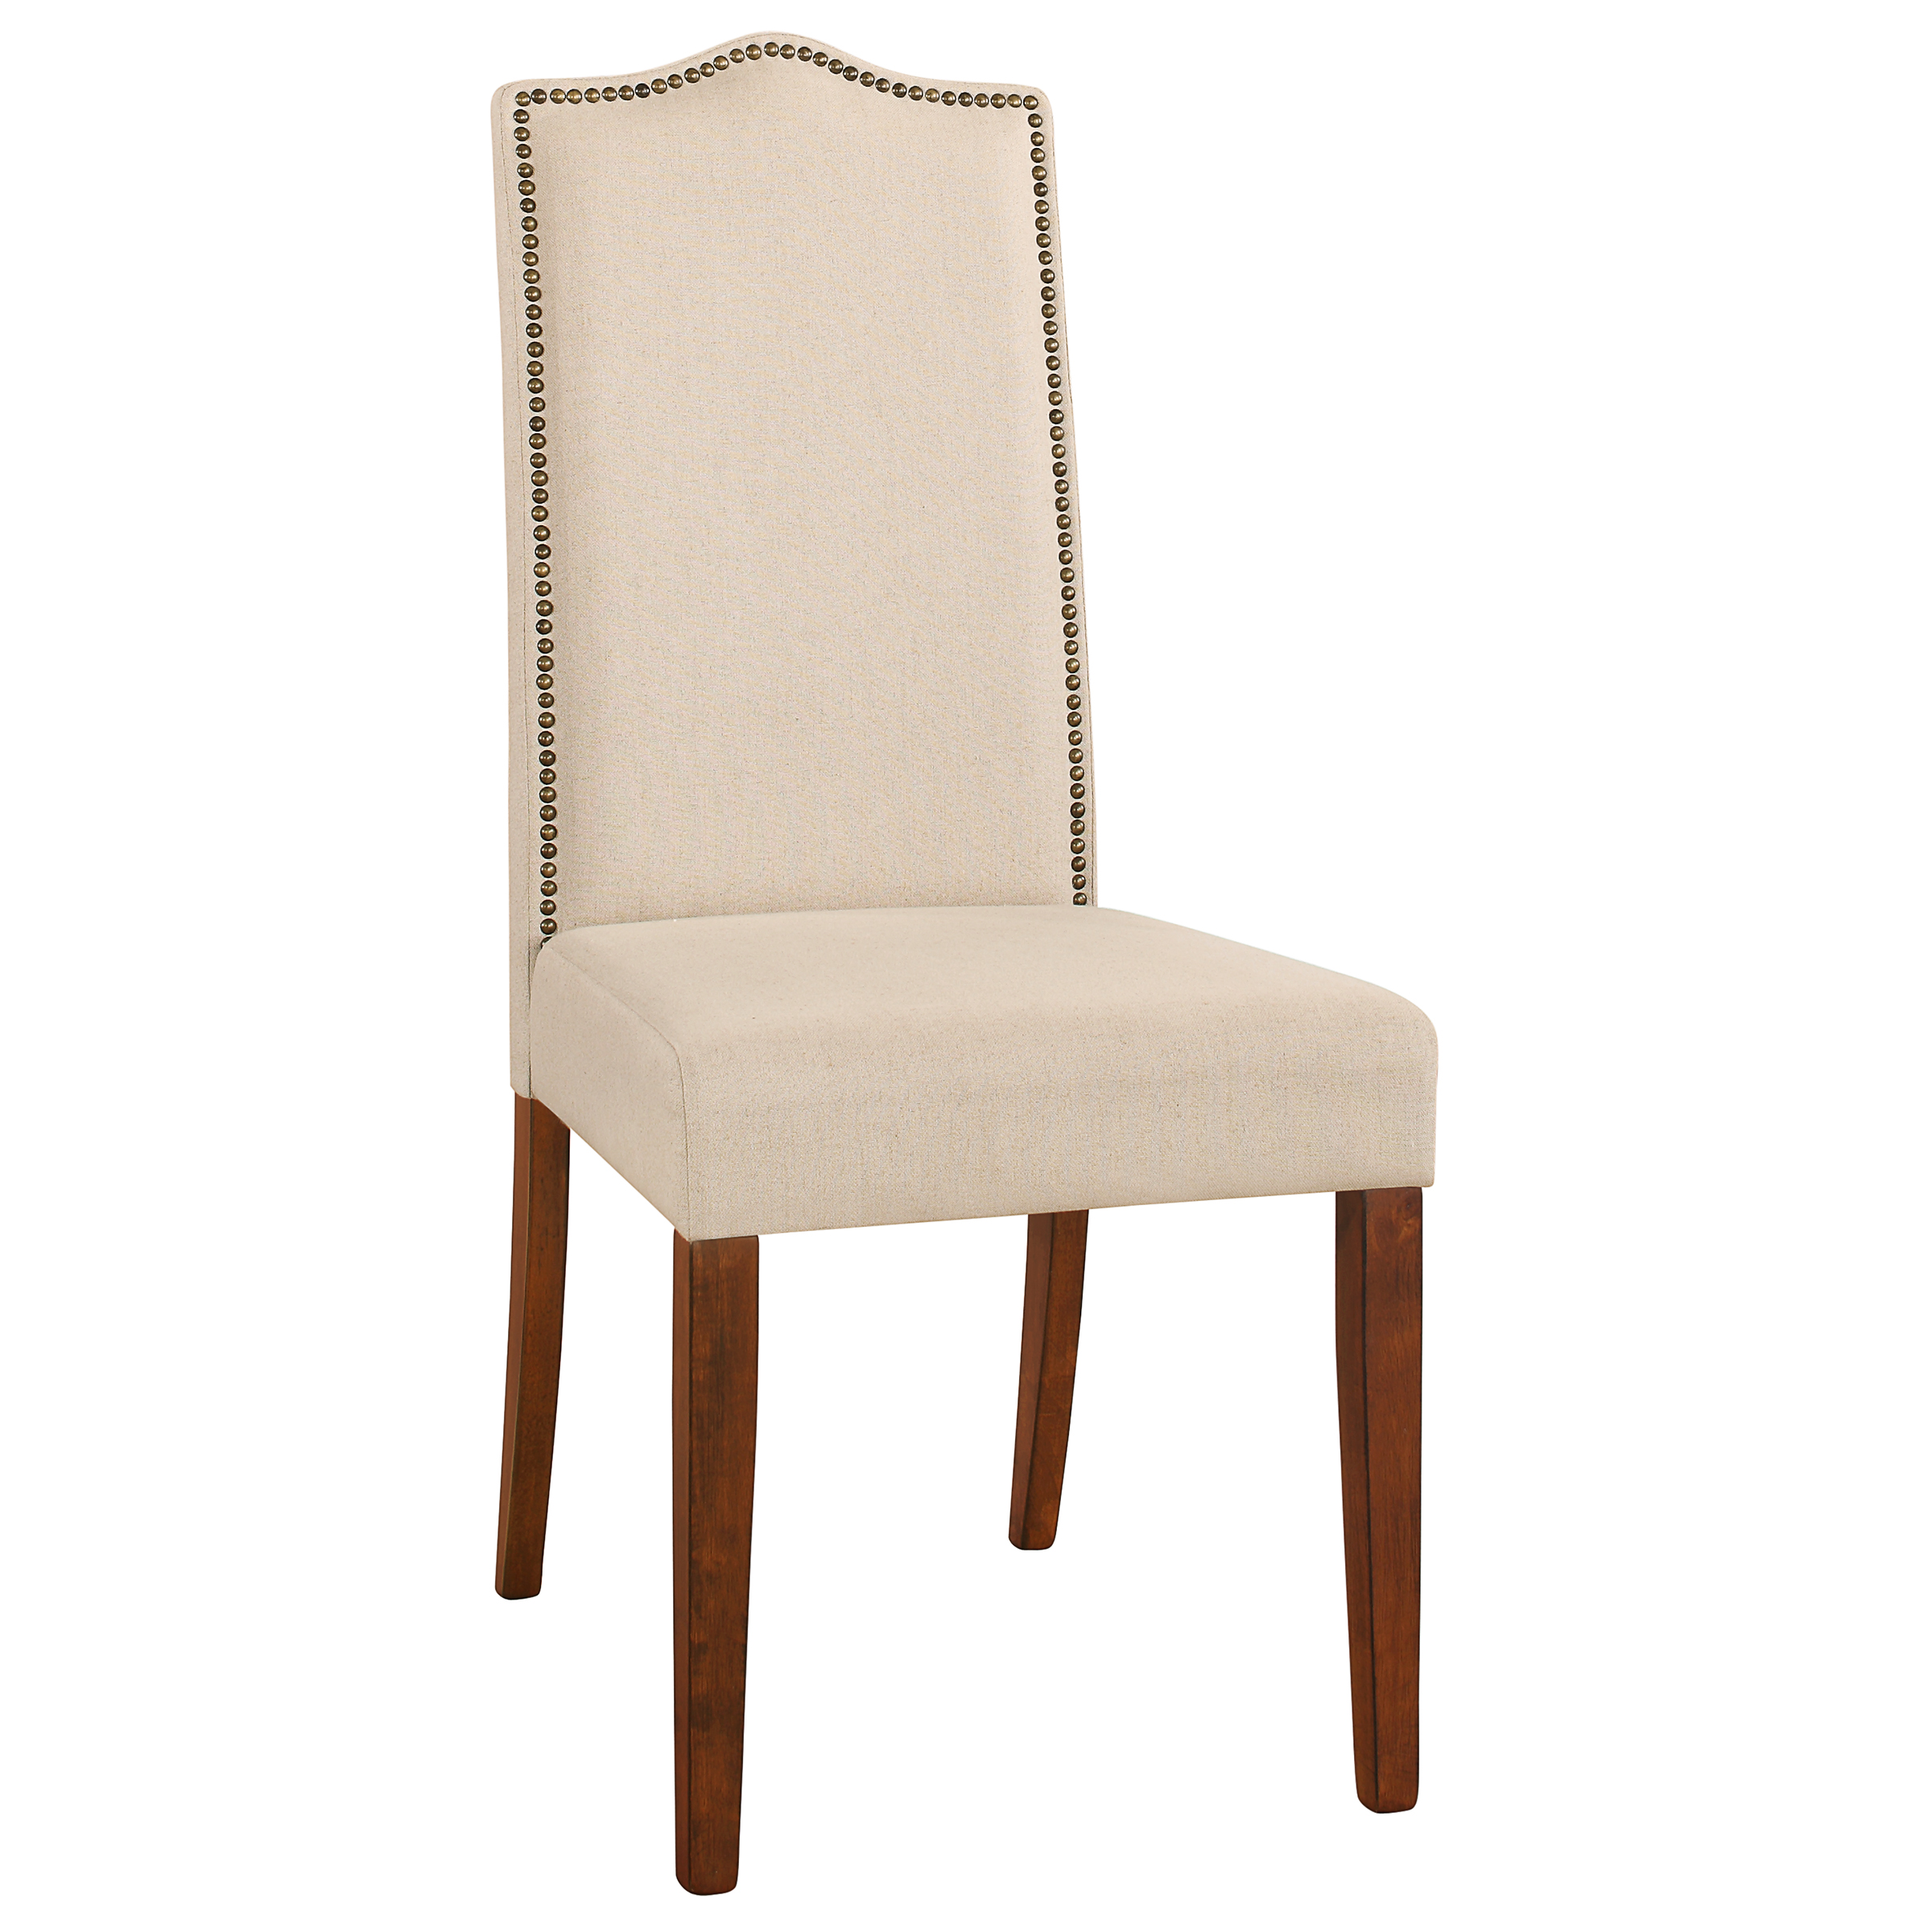 Hudson Nail Head Parson Chair, Chestnut w/ Linen